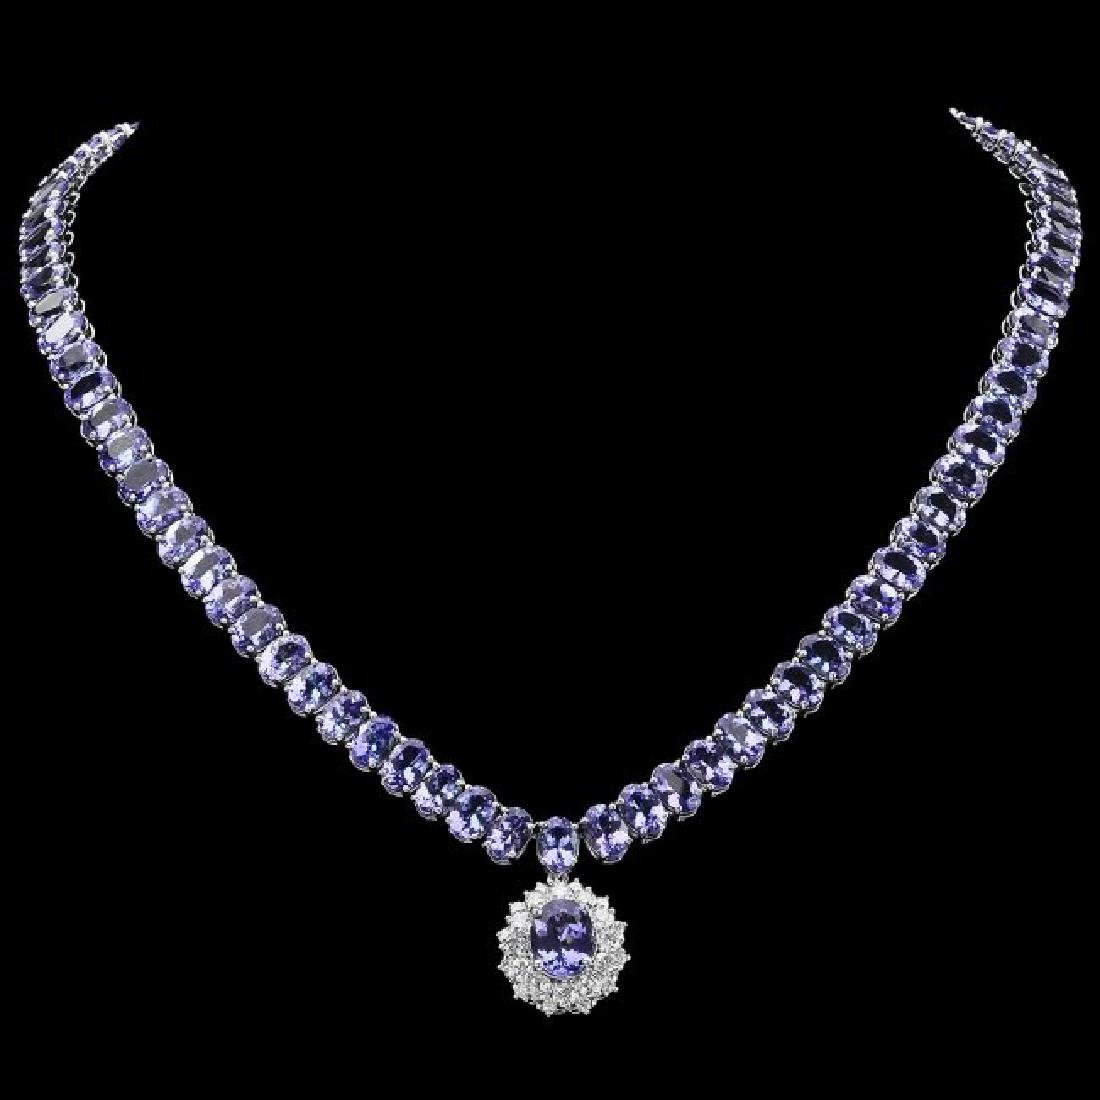 14k Gold 64.5ct Tanzanite 1.60ct Diamond Necklace - 2